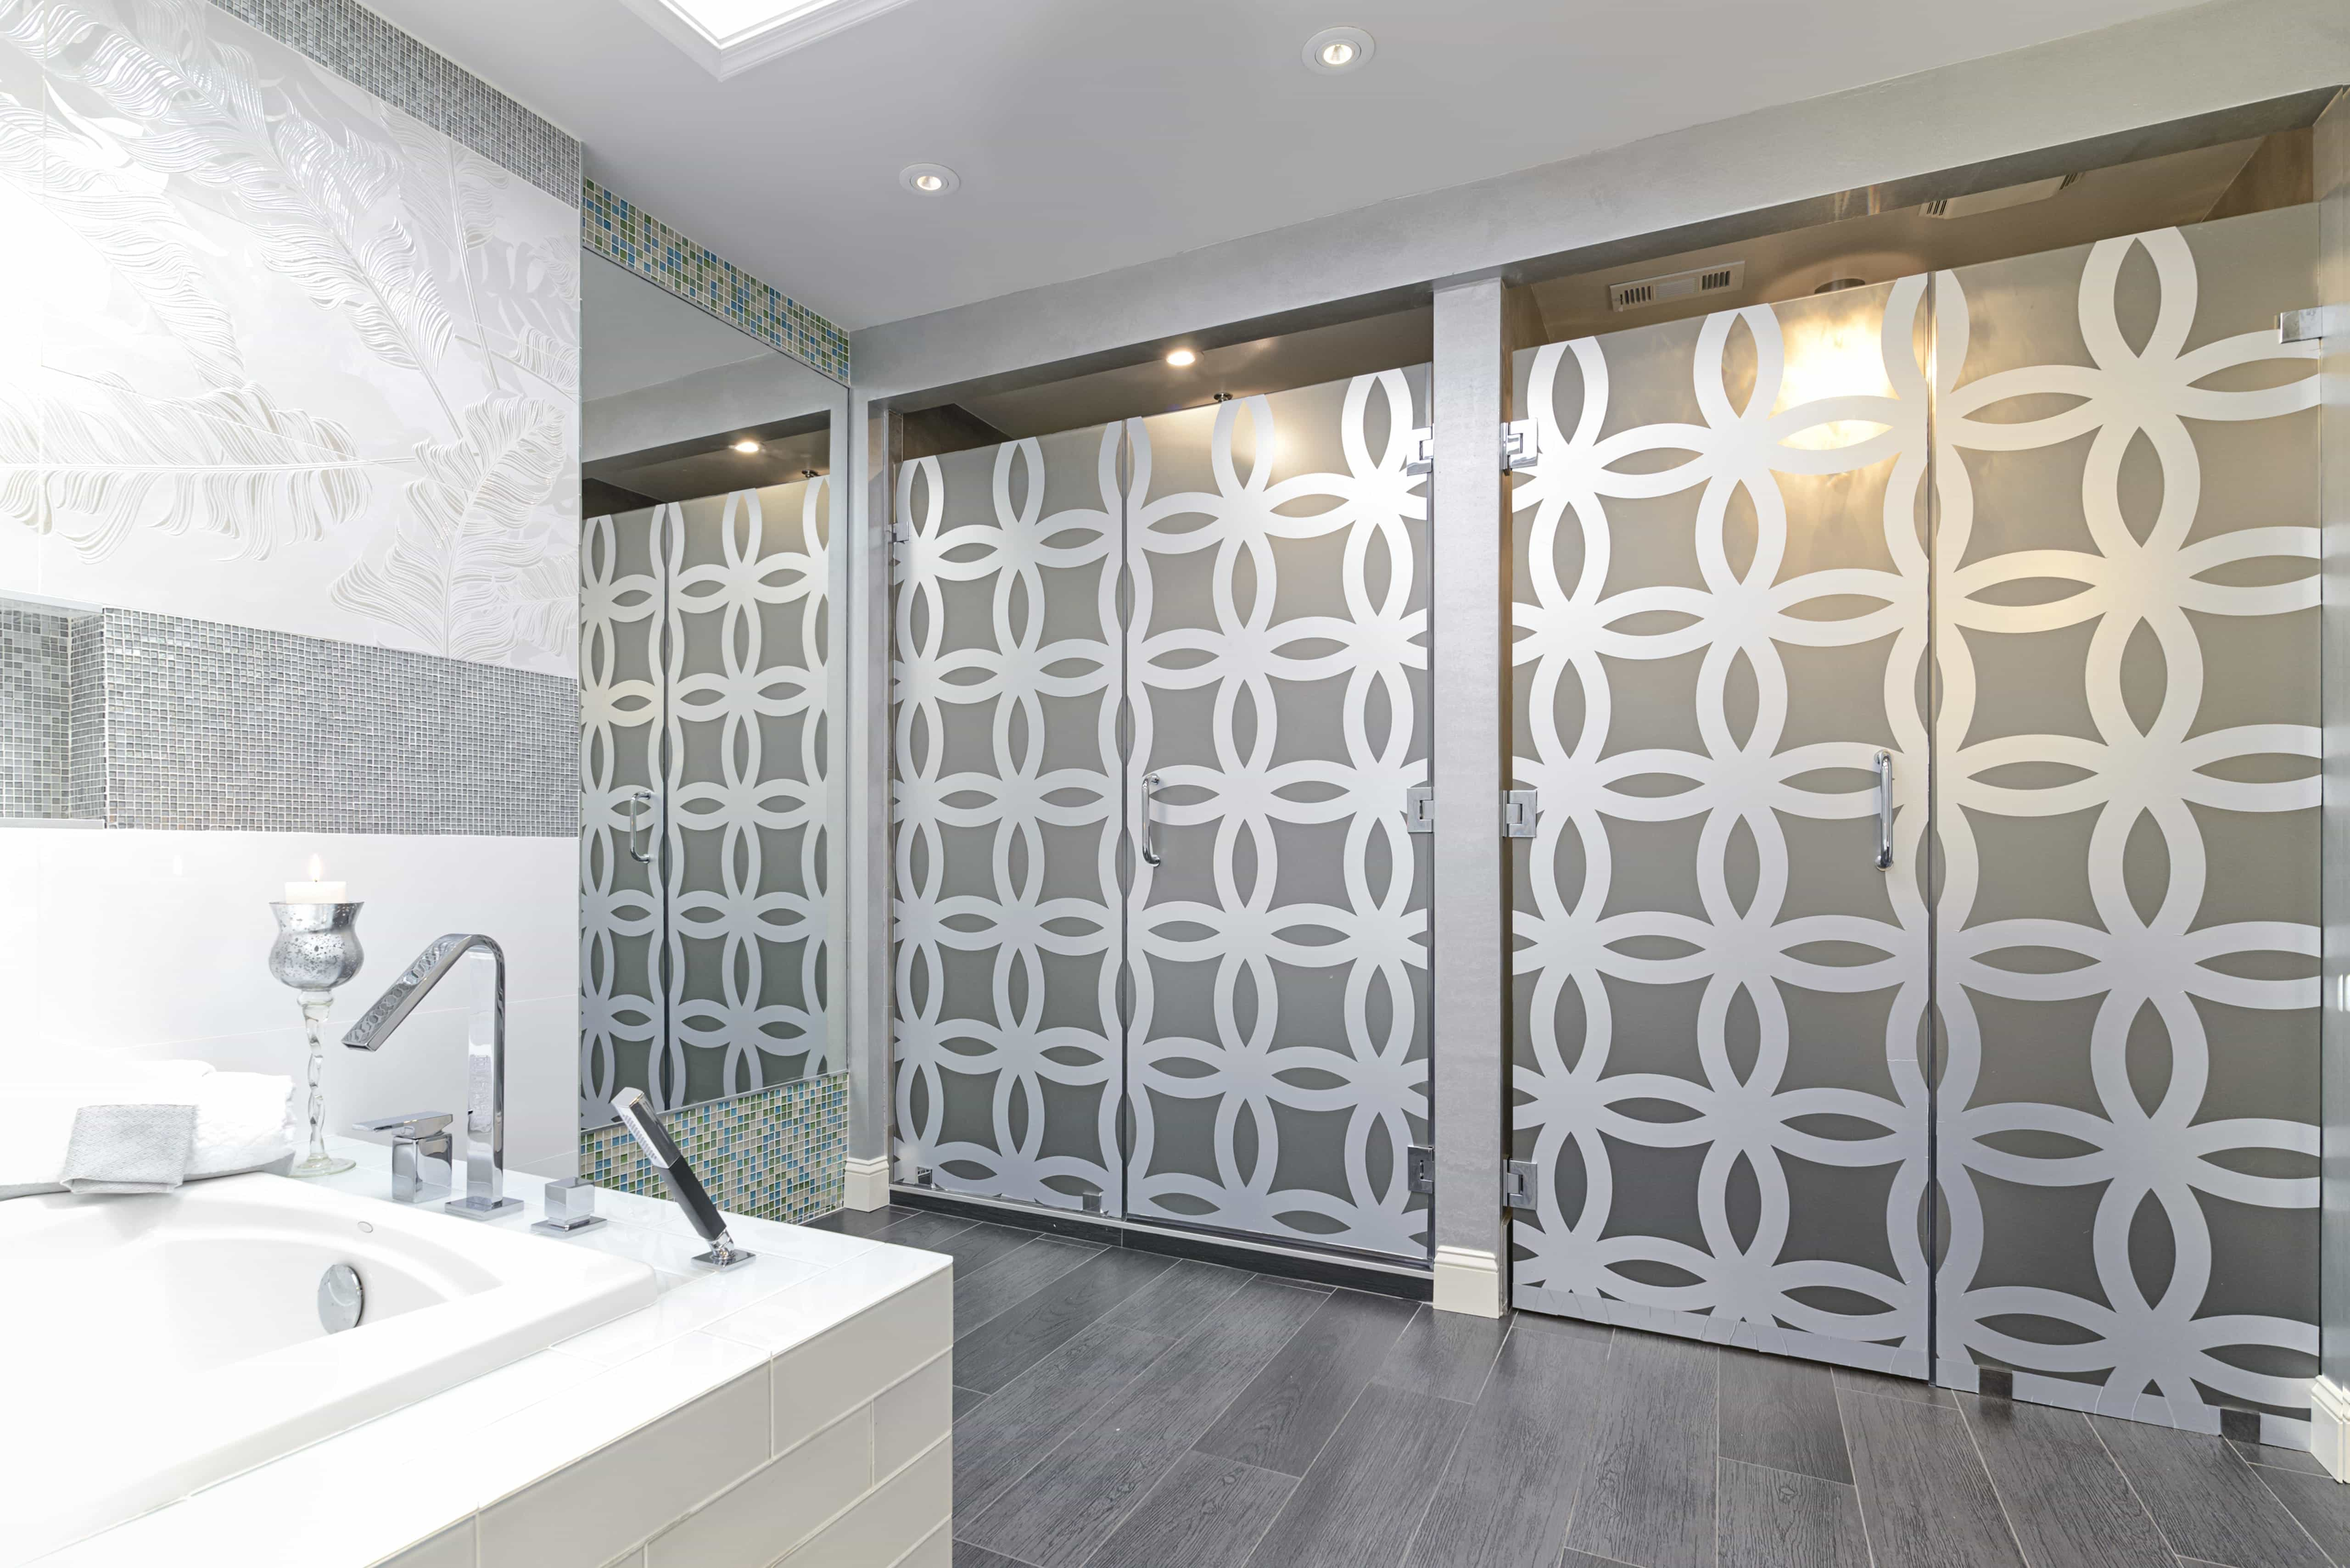 Contemporary Geometric Etched Glass Bathroom Doors (View 1 of 7)